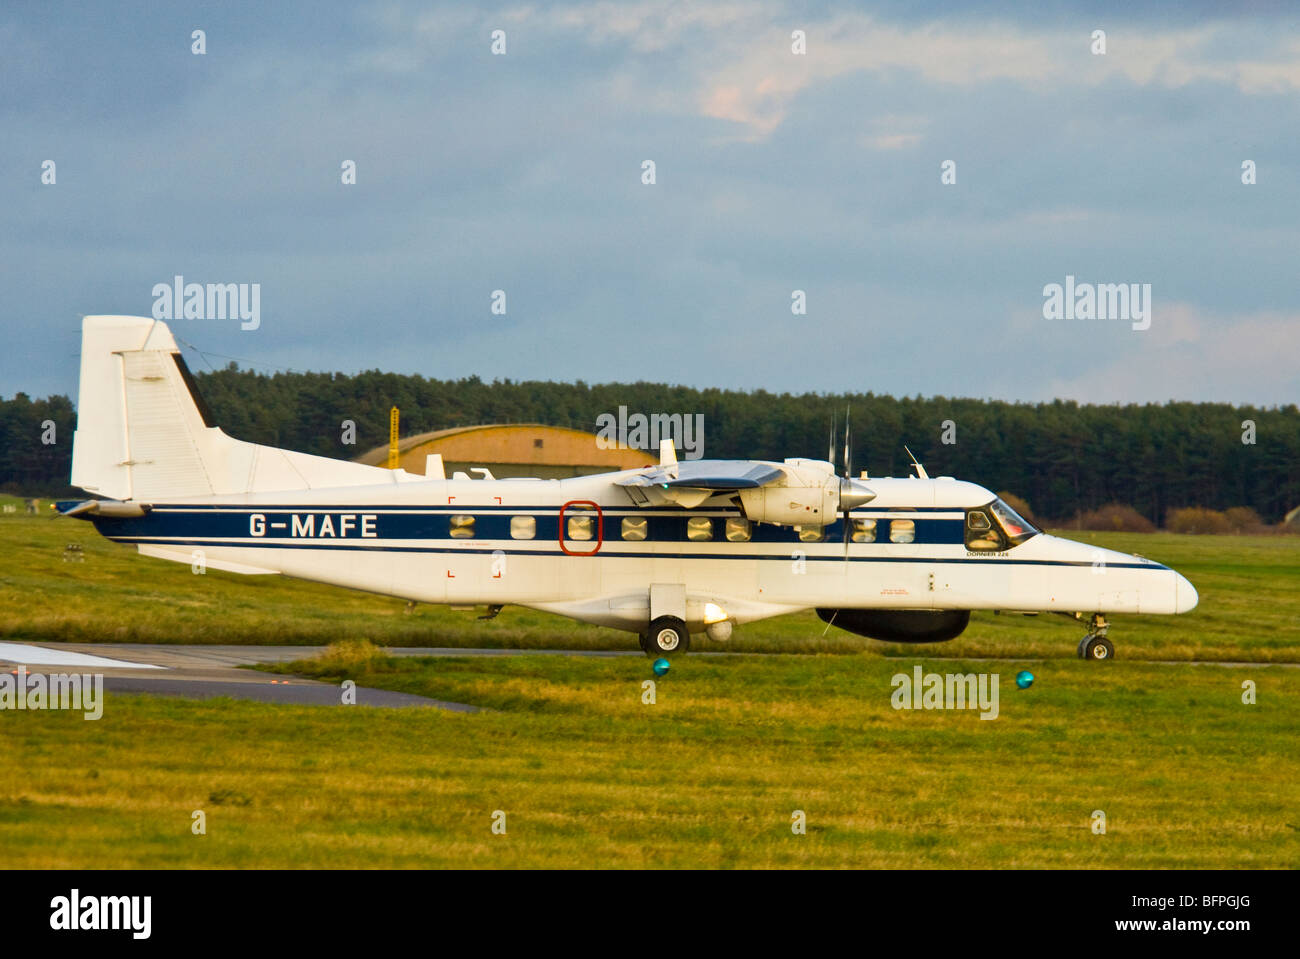 Dornier 228-202 Utility Transport Twin Engined Propellor Driven Aircraft  SCO 5569 - Stock Image